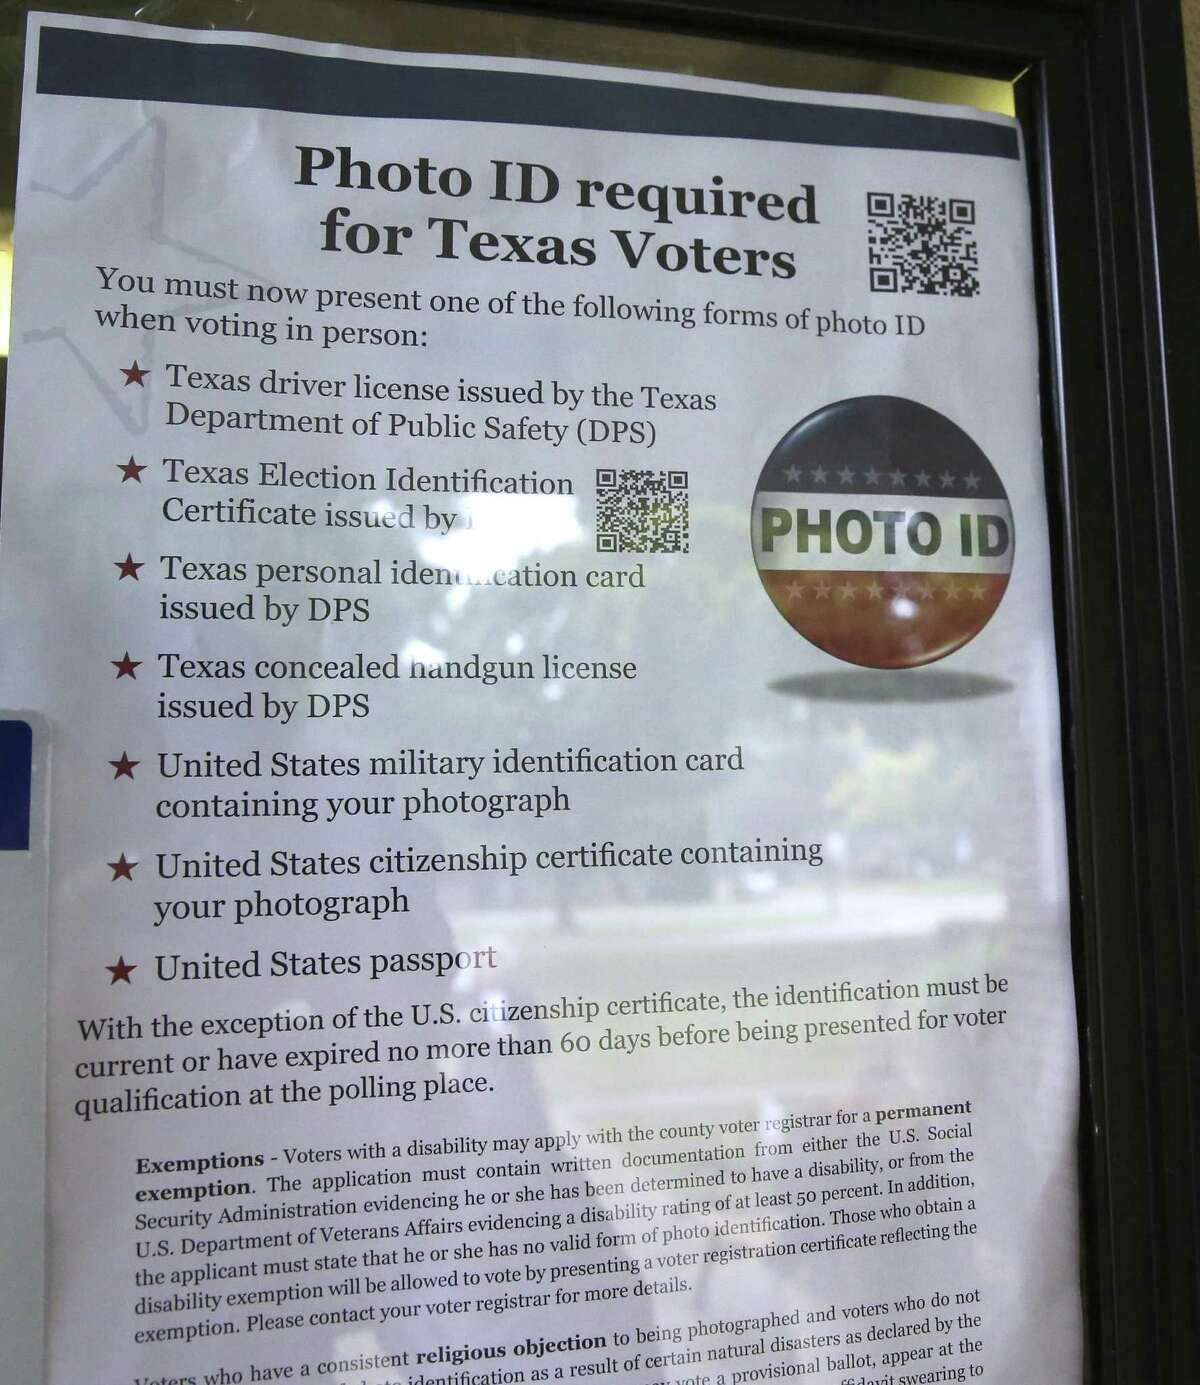 FILE - In this Nov. 5, 2013 file photo, a sign in a window tells of photo ID requirements for voting at a polling location in Richardson, Texas. A judge has ruled for a second time that Texas' strict voter ID law was intentionally crafted to discriminate against minorities.The ruling by U.S. District Judge Nelva Gonzales Ramos of Corpus Christi Monday, April 10, 2017, comes more than two years after she likened the ballot-box rules in Texas to a